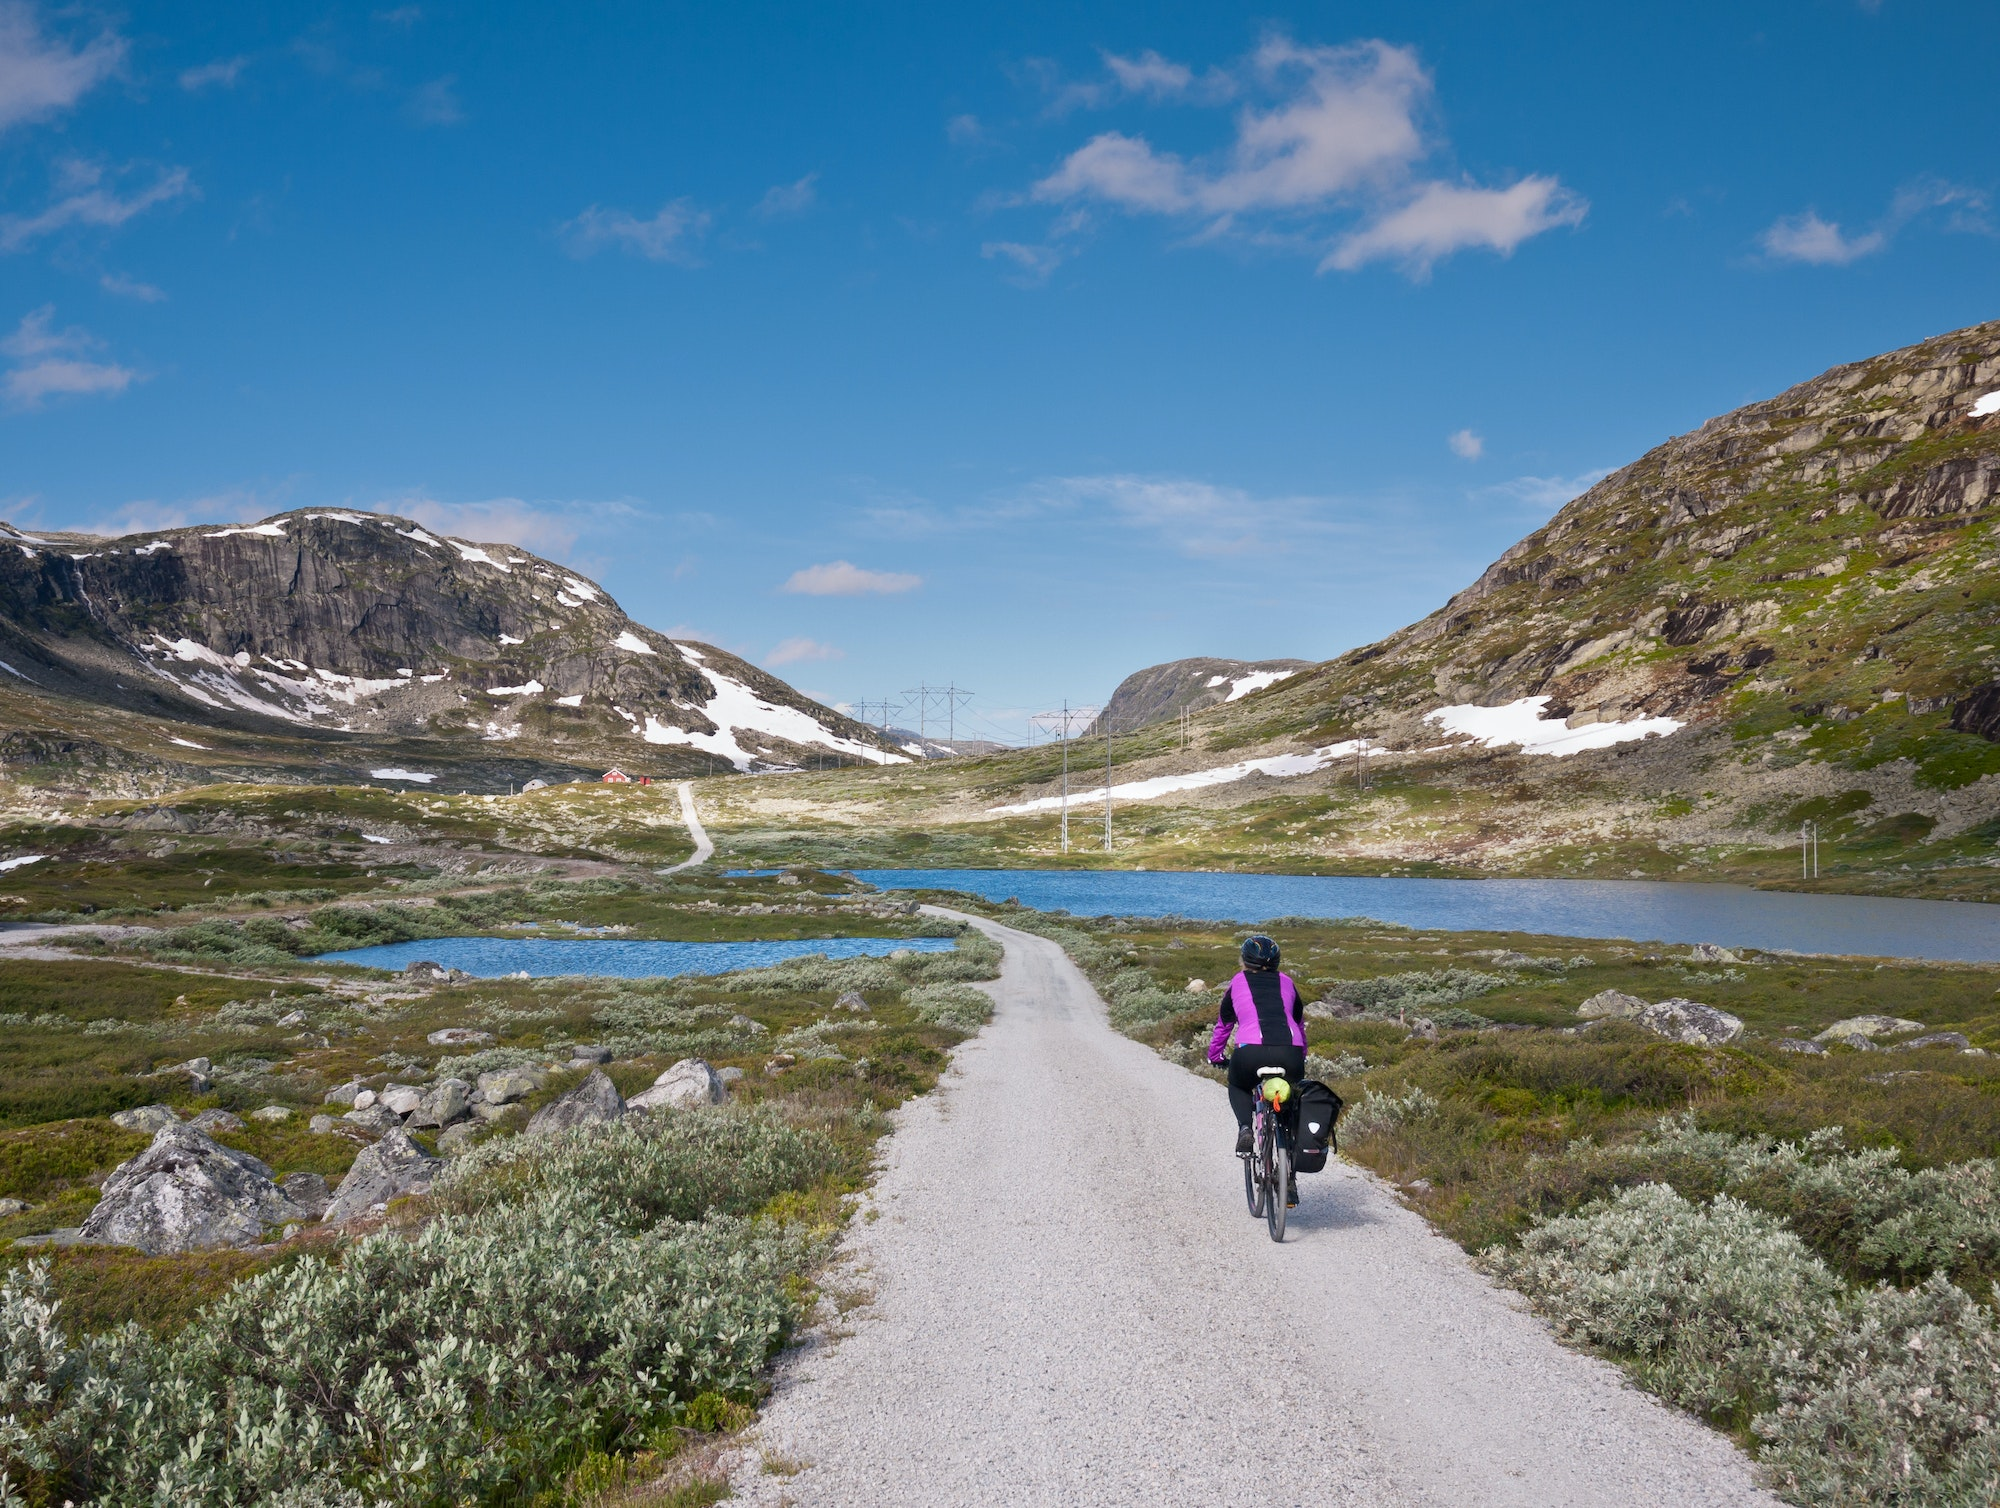 Bringing the kids or beginners? Stick to the first 16 miles of Rallarvegen, where the road is in good condition.